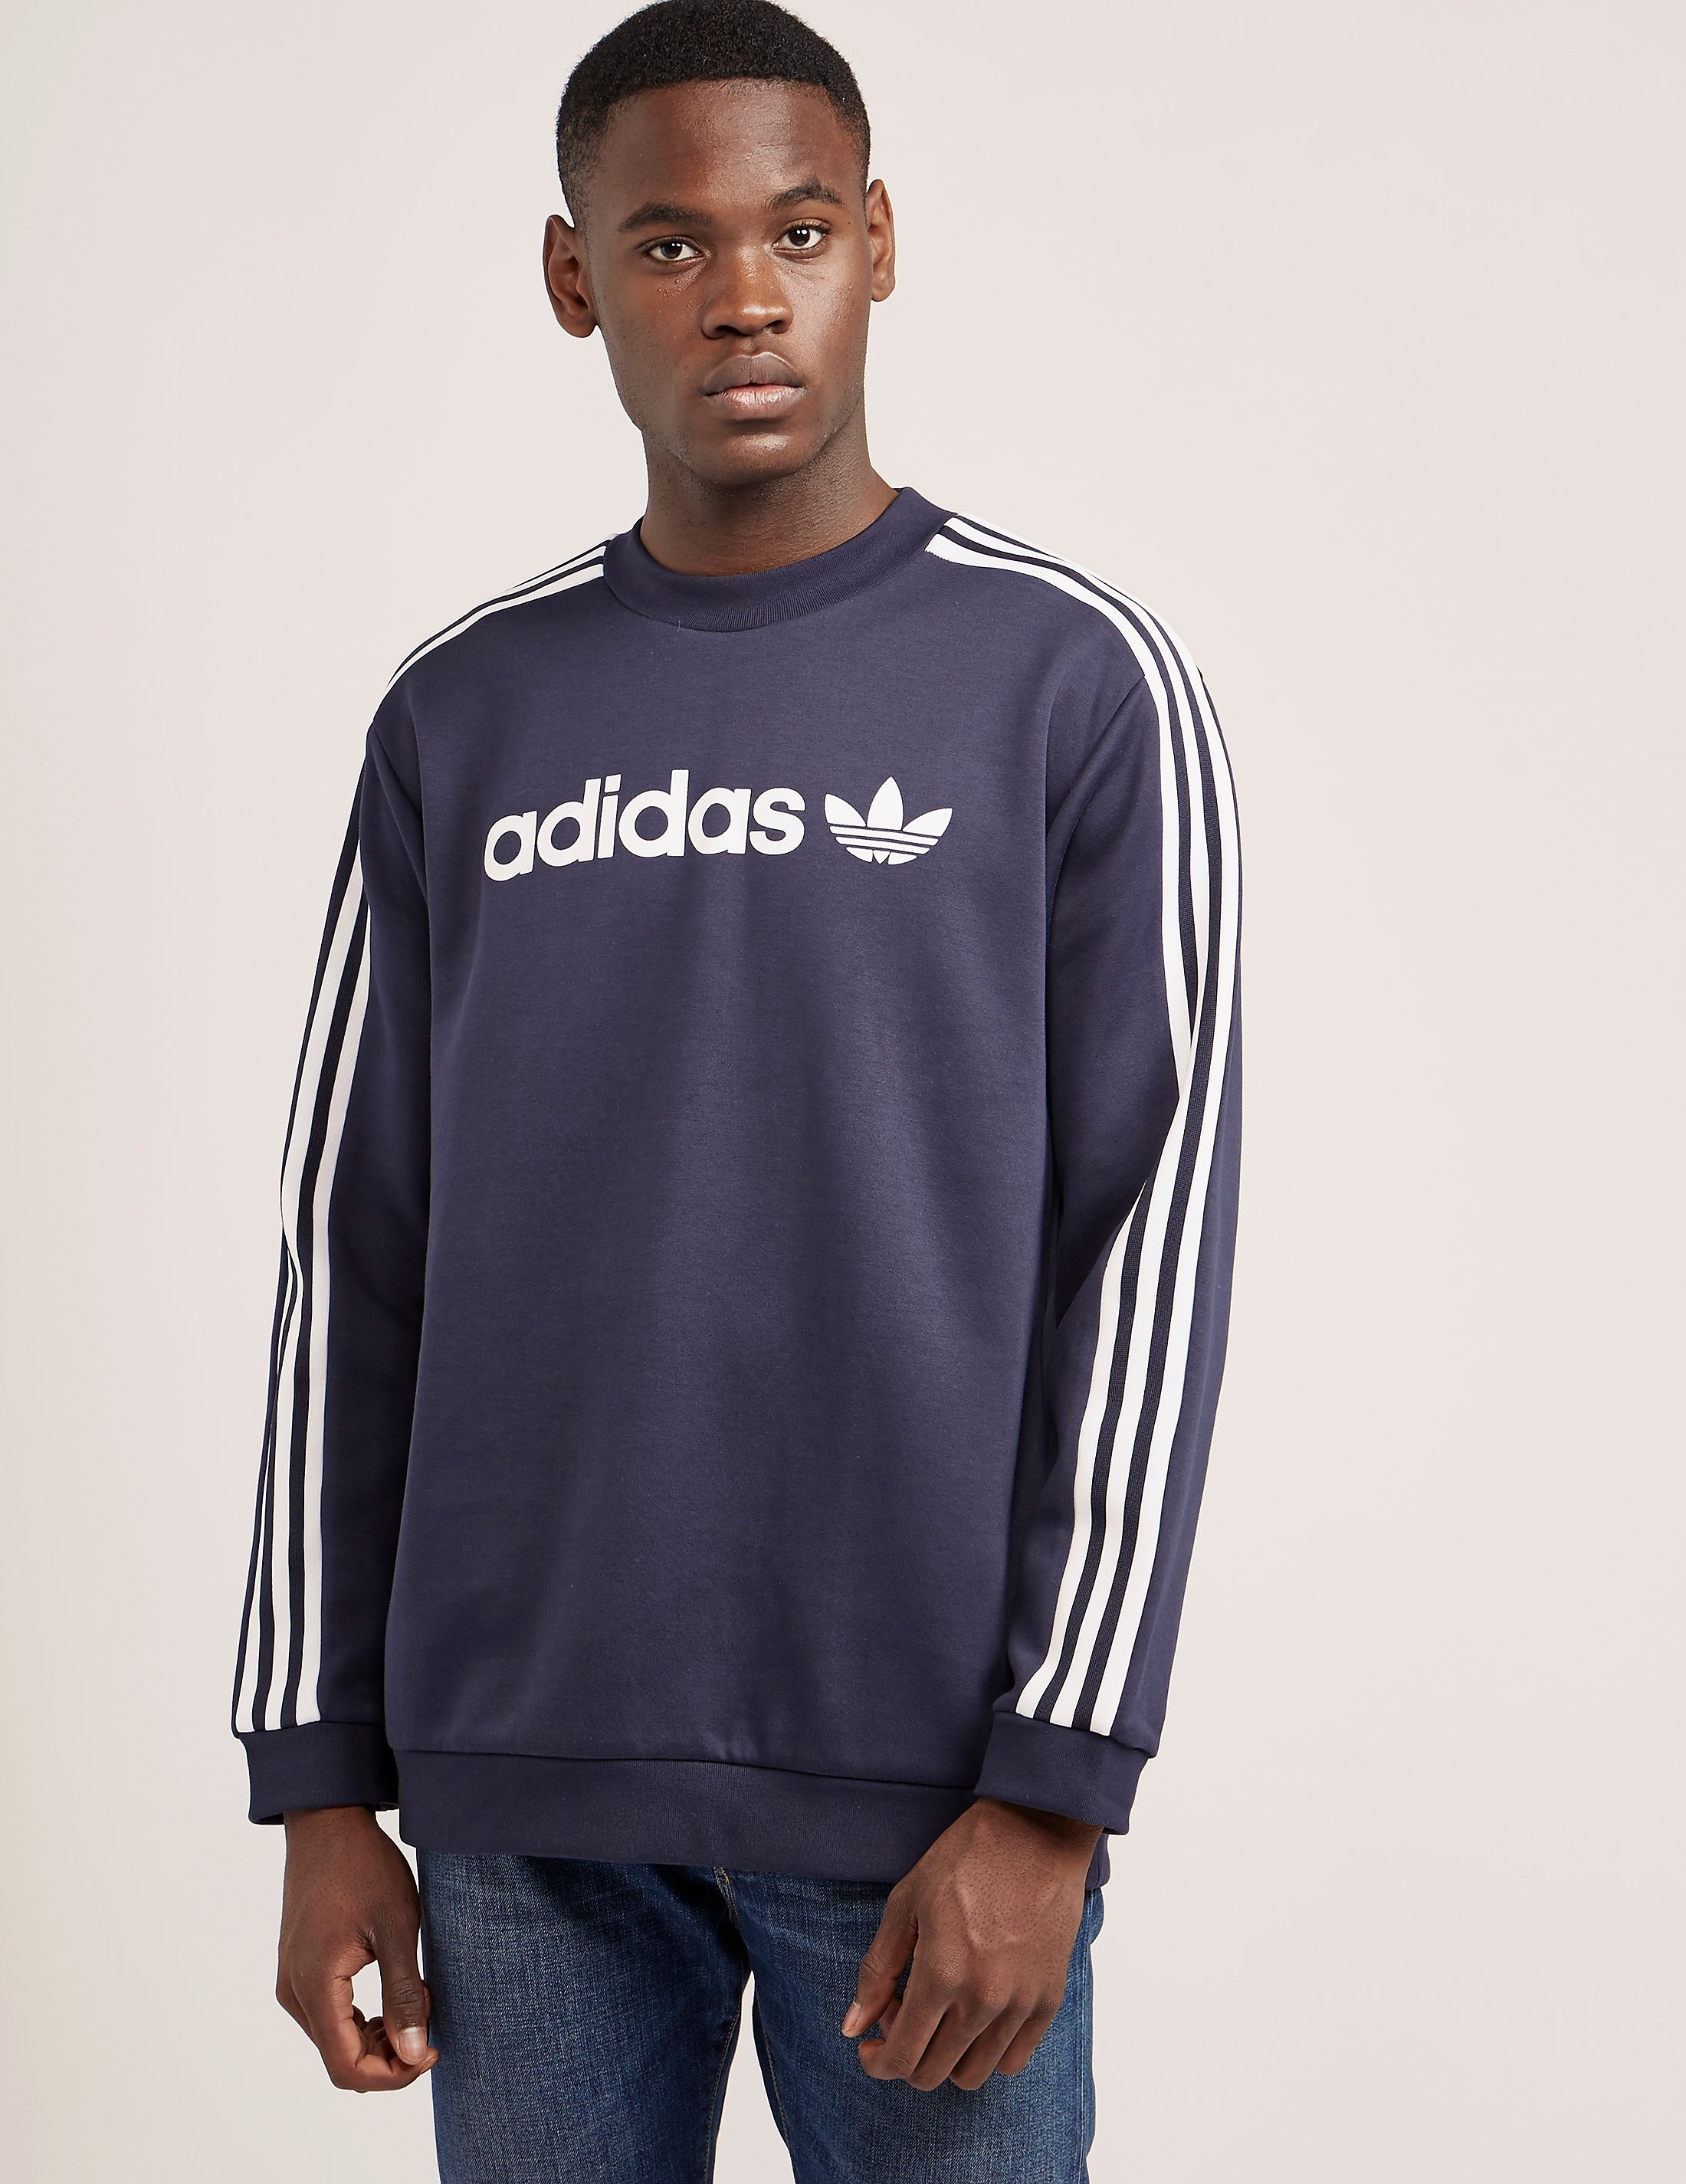 adidas Originals Linear Trefoil Sweatshirt